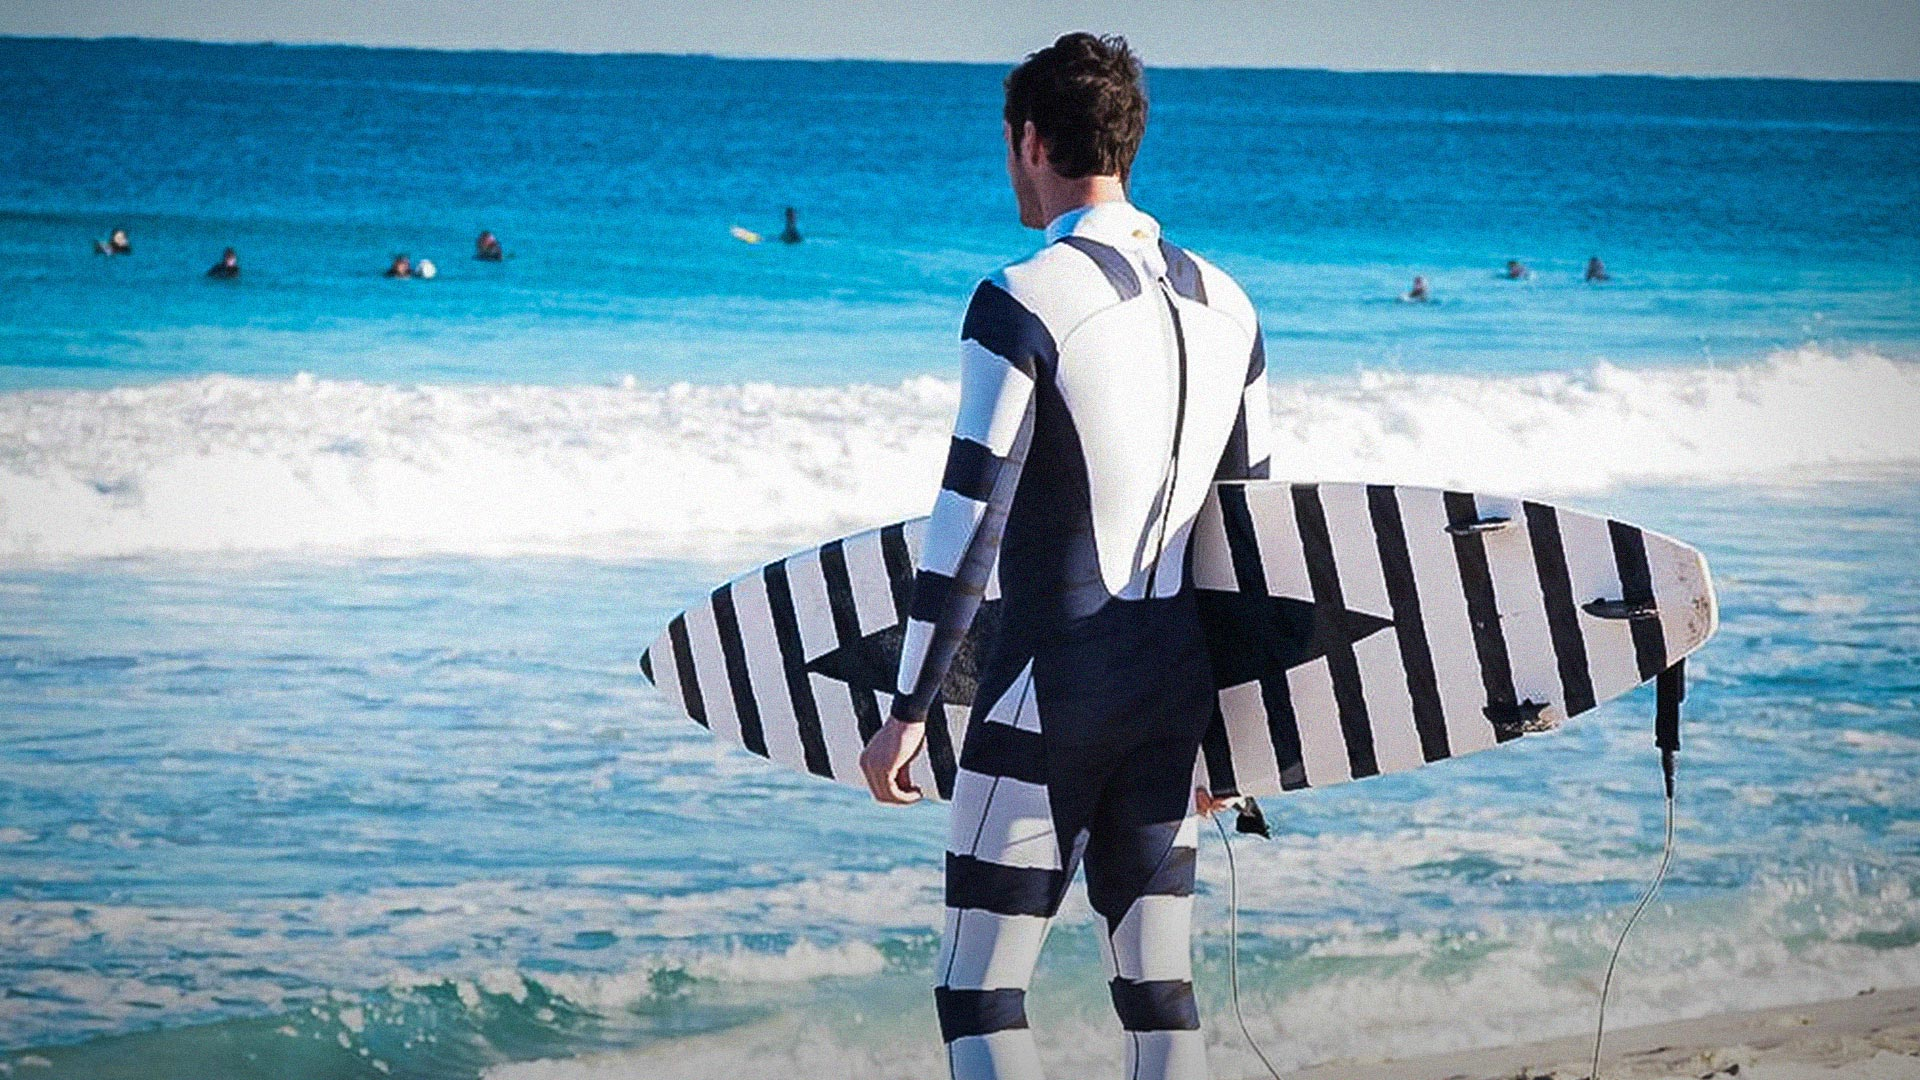 Hamish Jolly: A shark-deterrent wetsuit (and it's not what you think) thumbnail